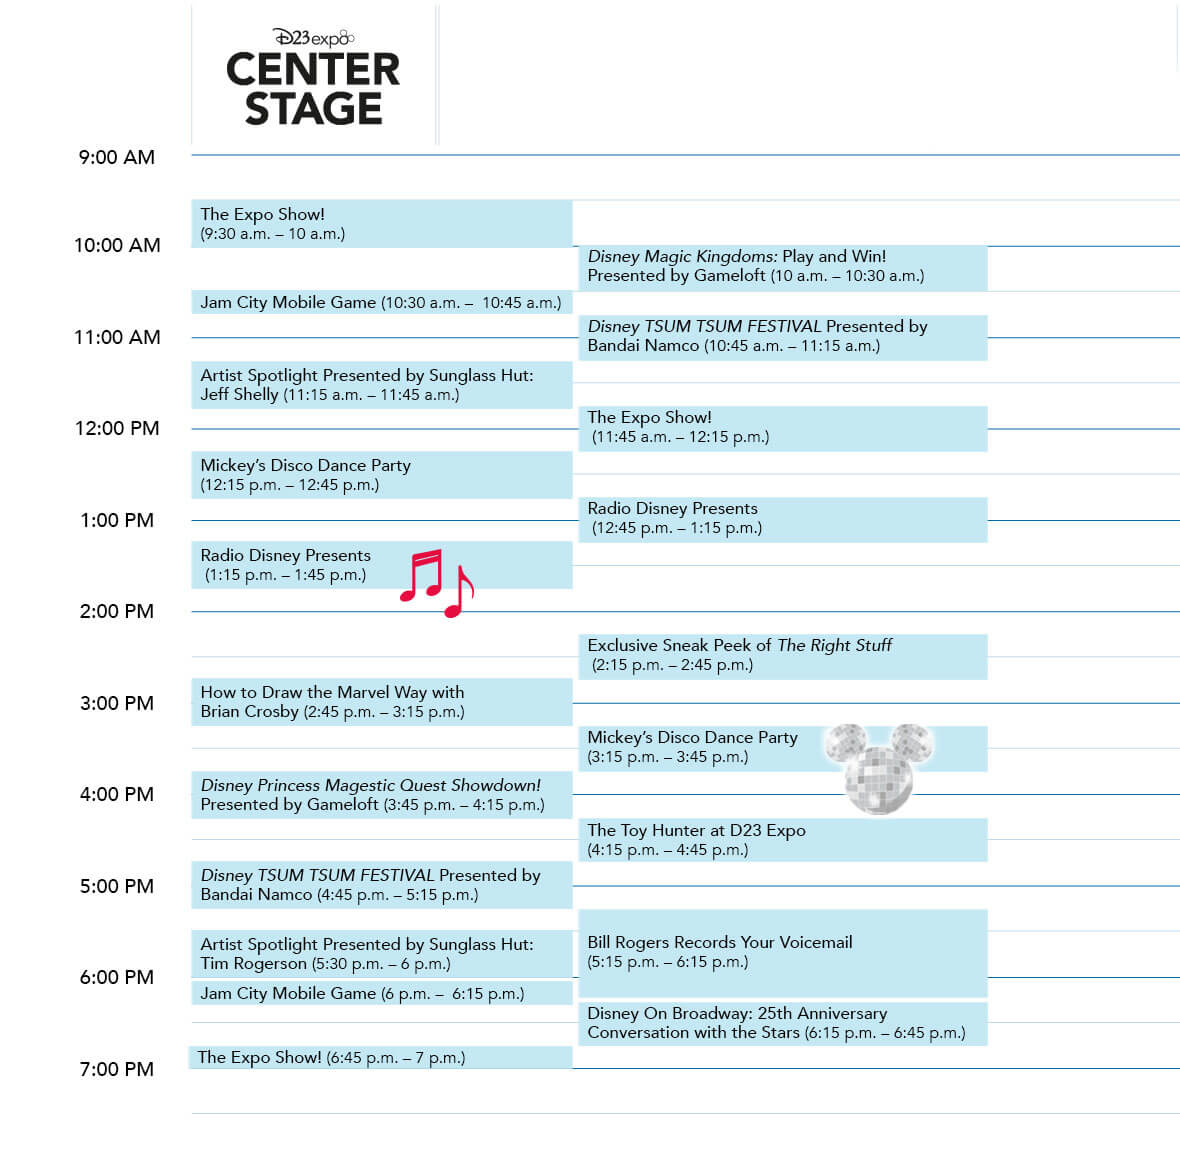 D23 Expo 2019 Center Stage Saturday schedule